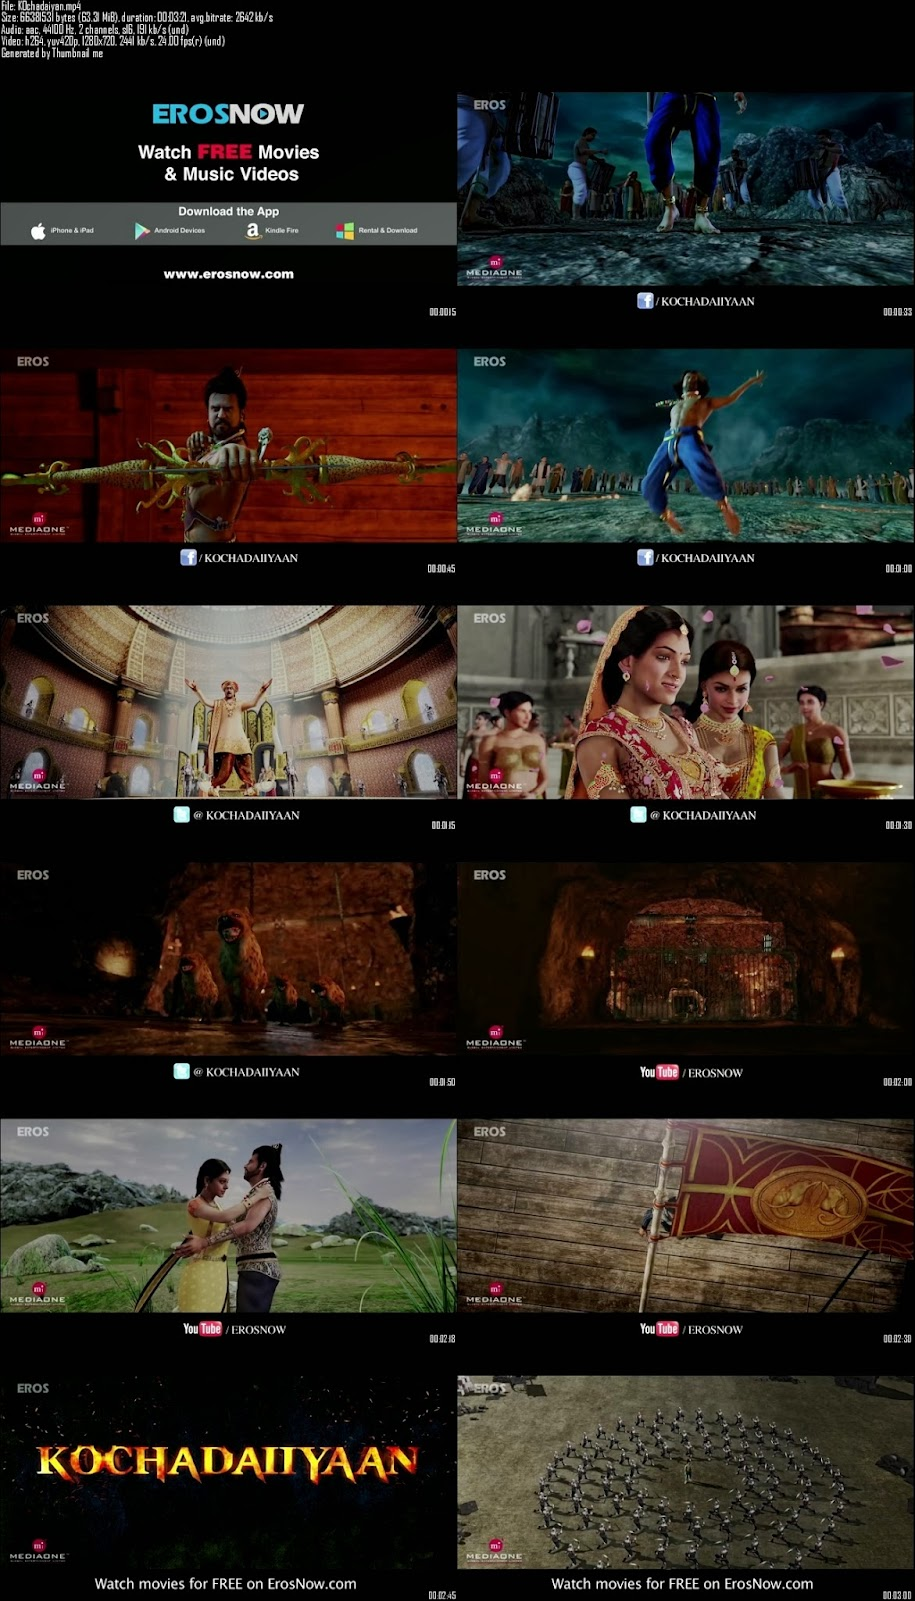 Mediafire Resumable Download Link For Teaser Promo Of Kochadaiiyaan The Legend (2014)